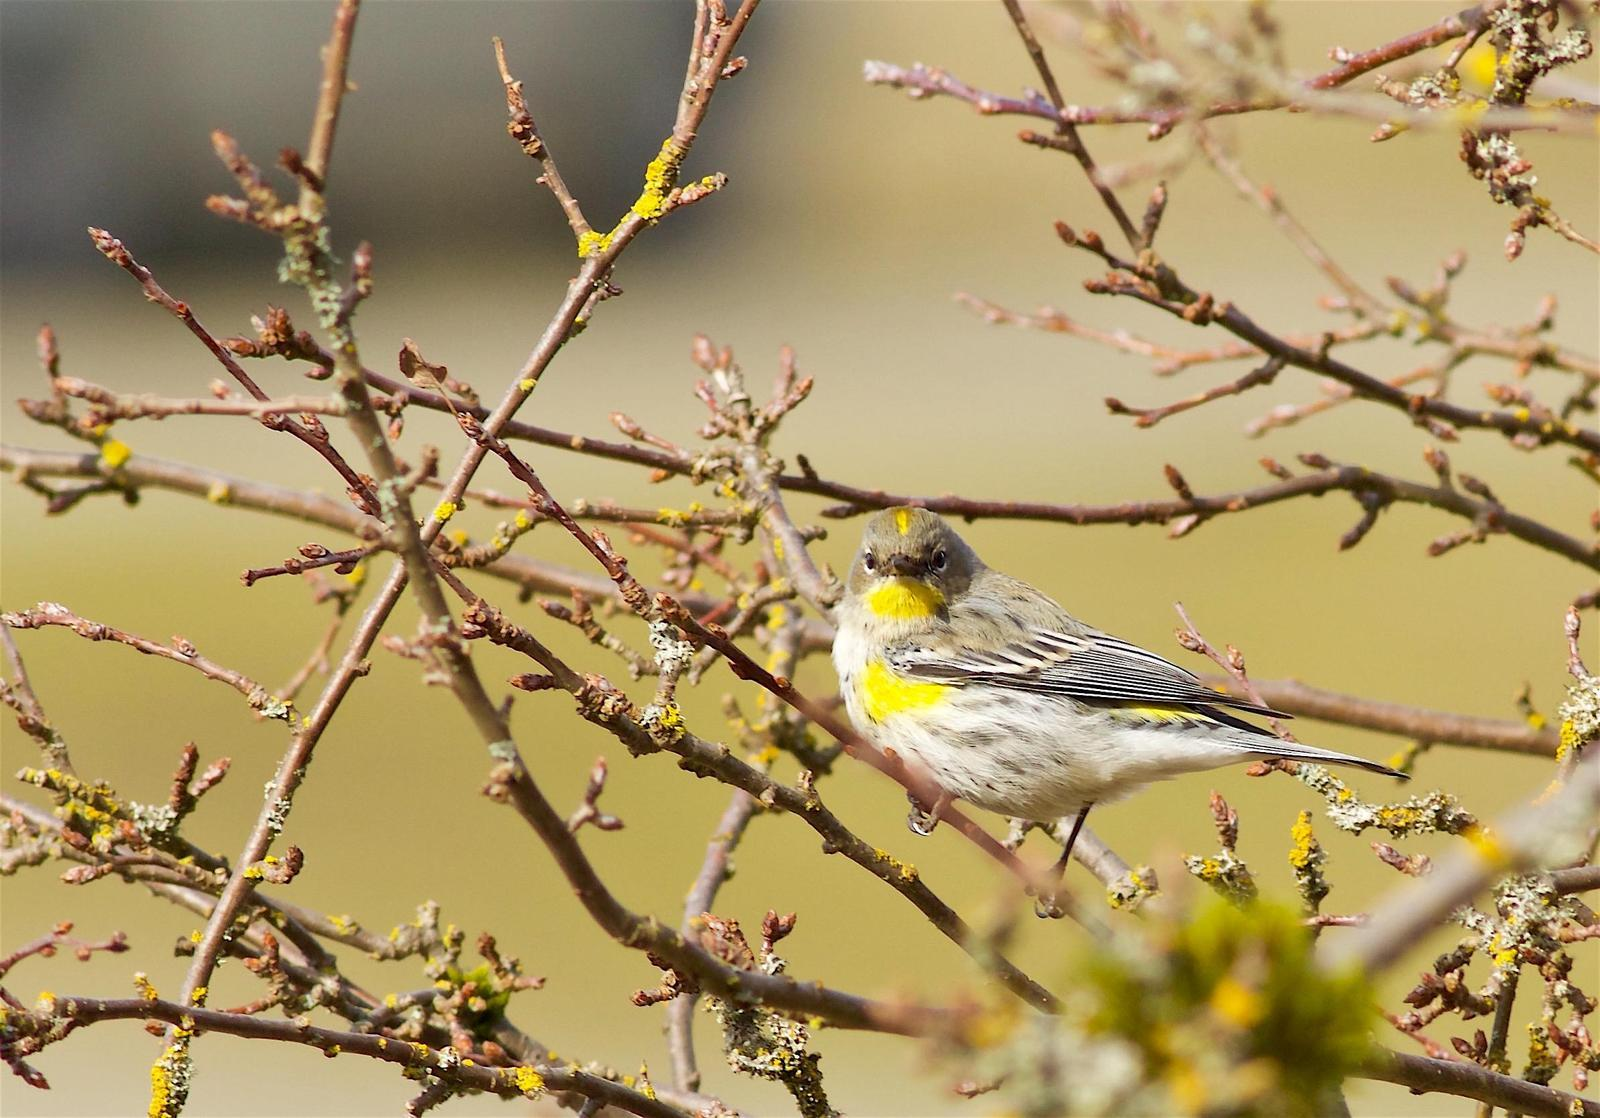 Yellow-rumped Warbler (Audubon's) Photo by Kathryn Keith